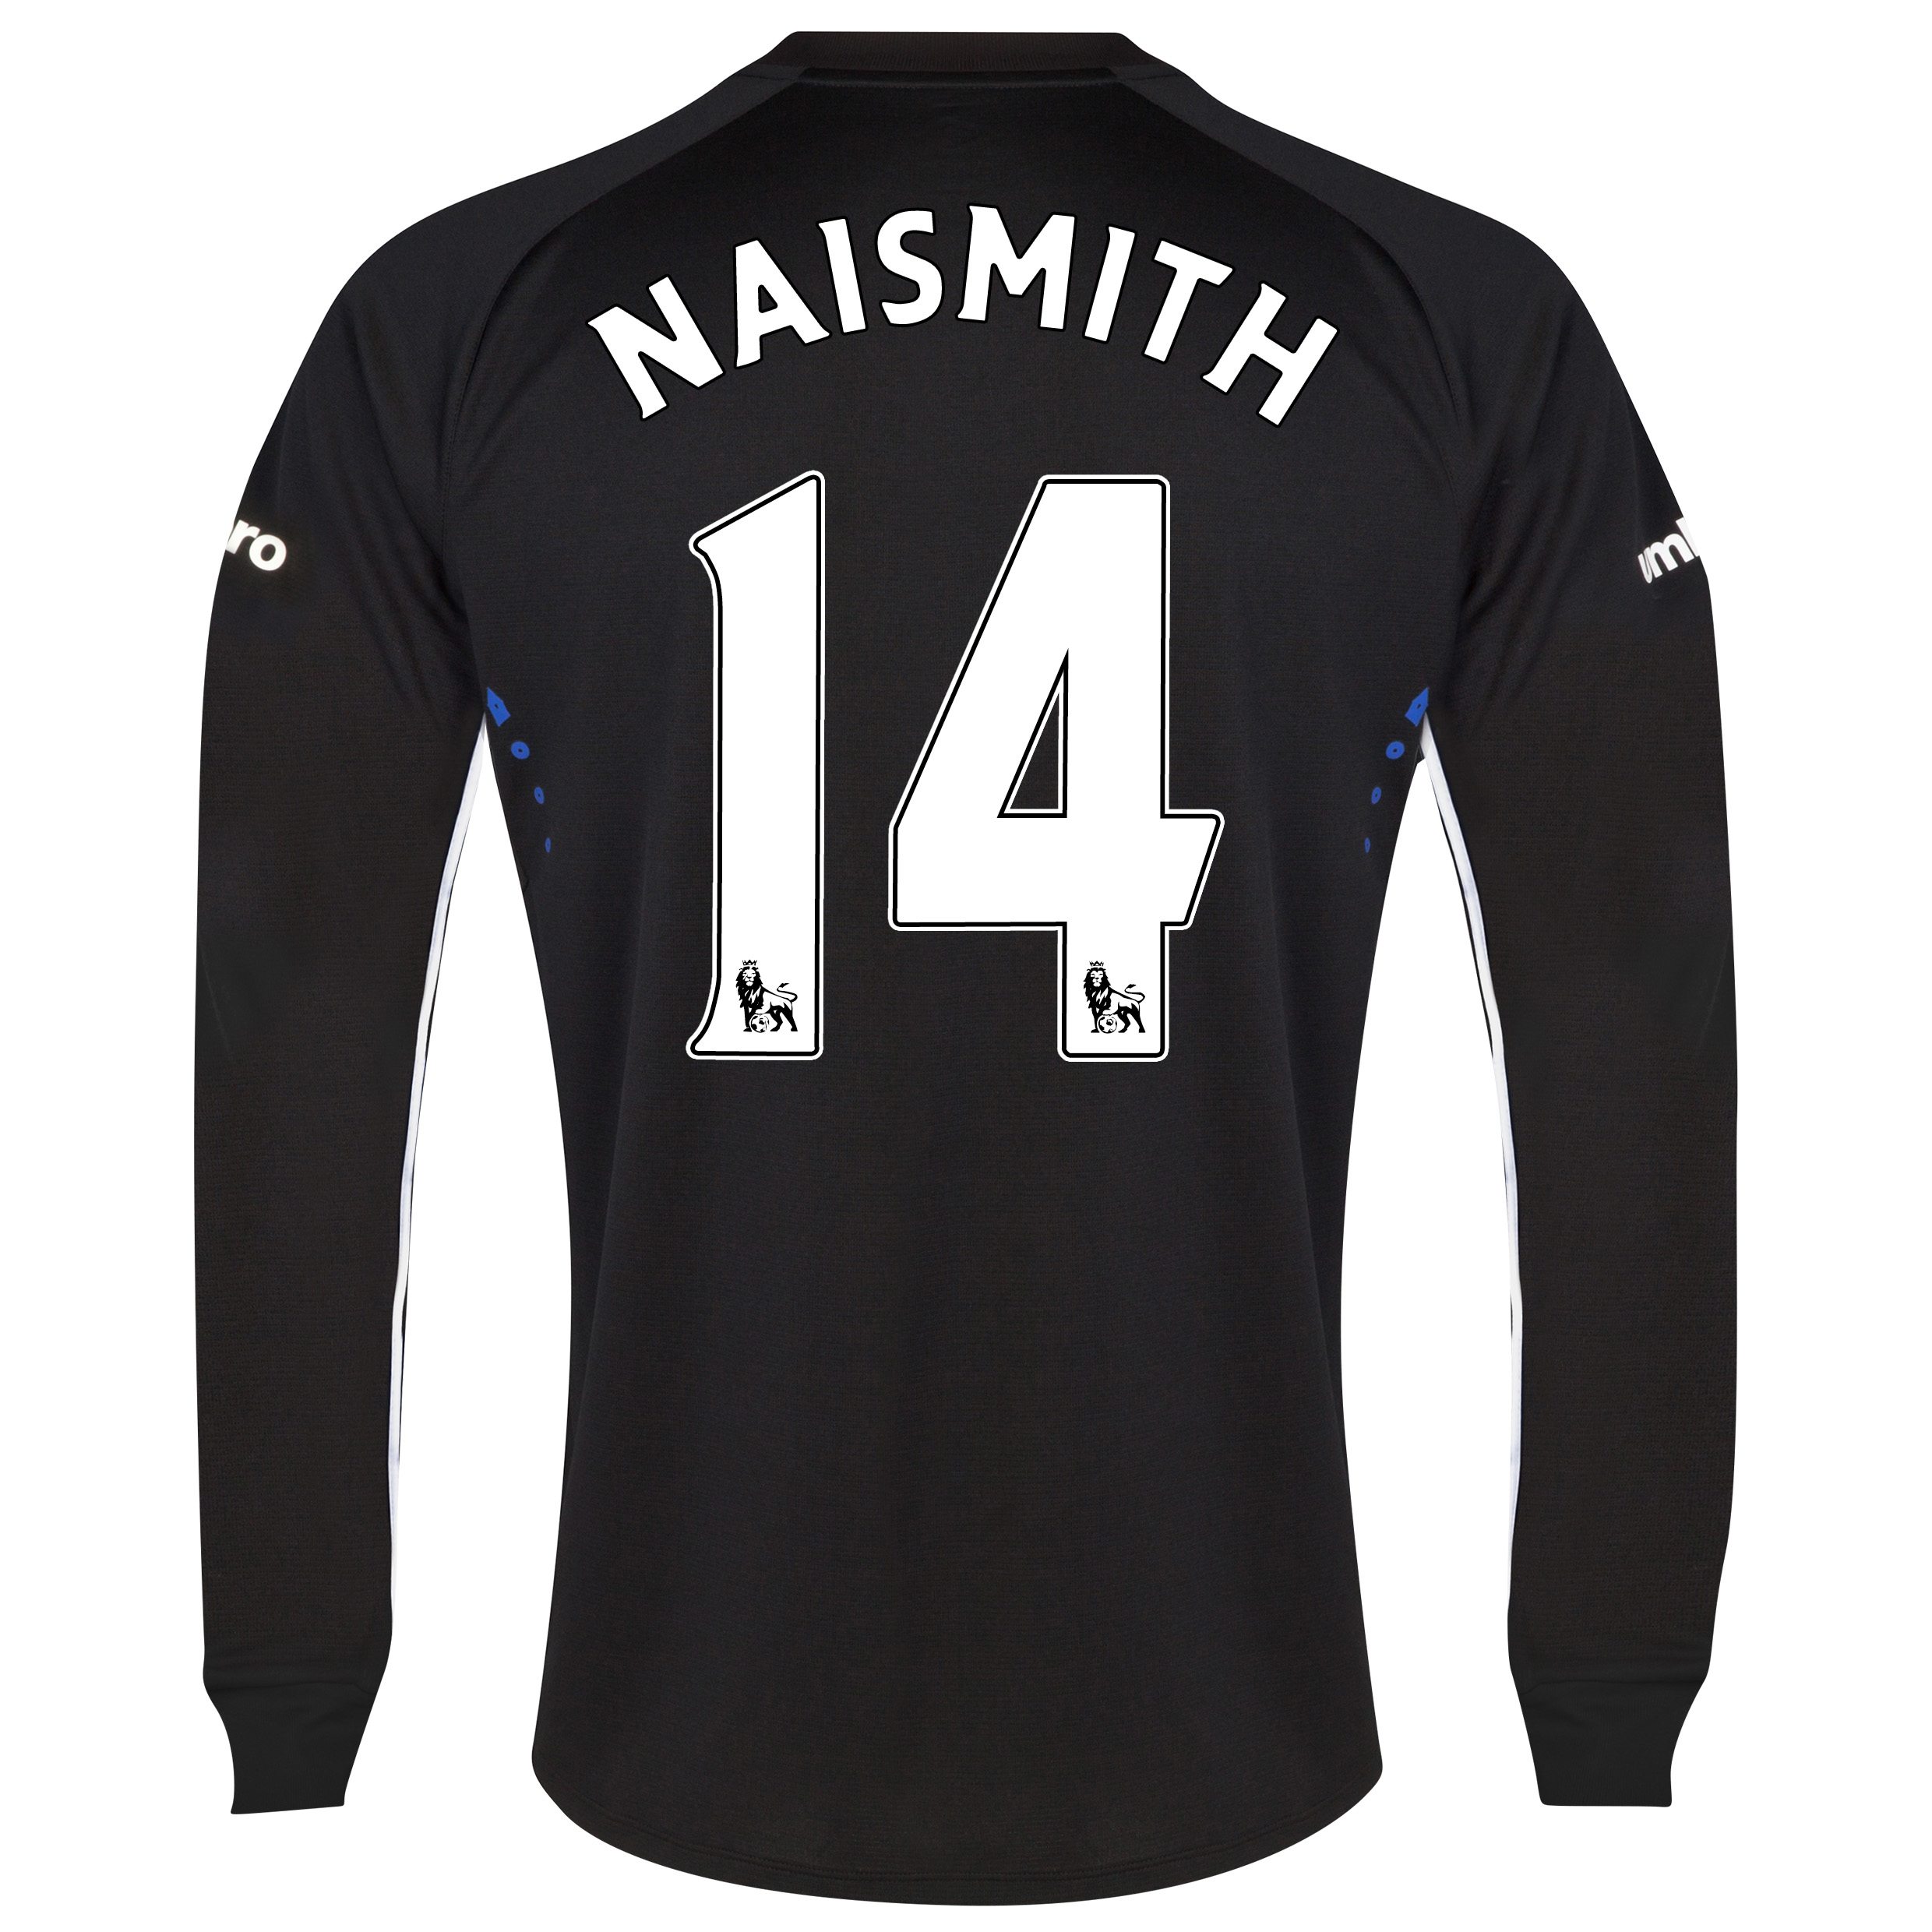 Everton LS Away Shirt 2014/15 with Naismith 14 printing